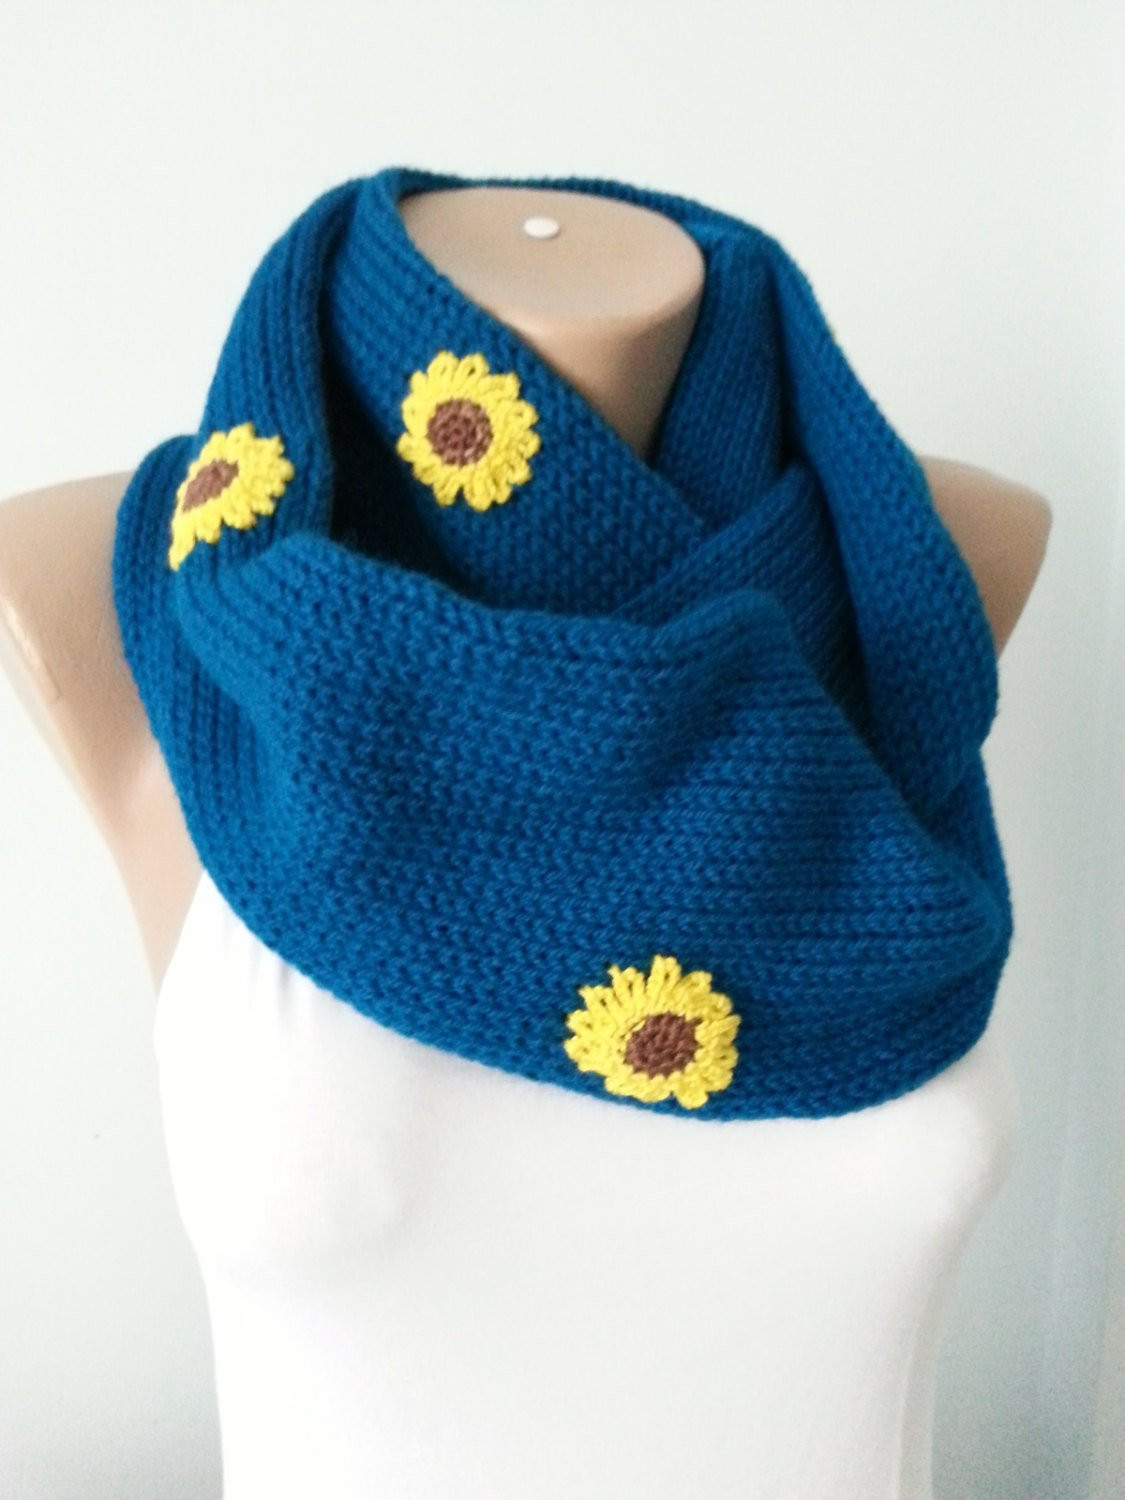 Knit Infinity Scarf Elegant Knitted Scarf Knit Scarf Infinity Scarf Winter Scarf Of Wonderful 49 Photos Knit Infinity Scarf